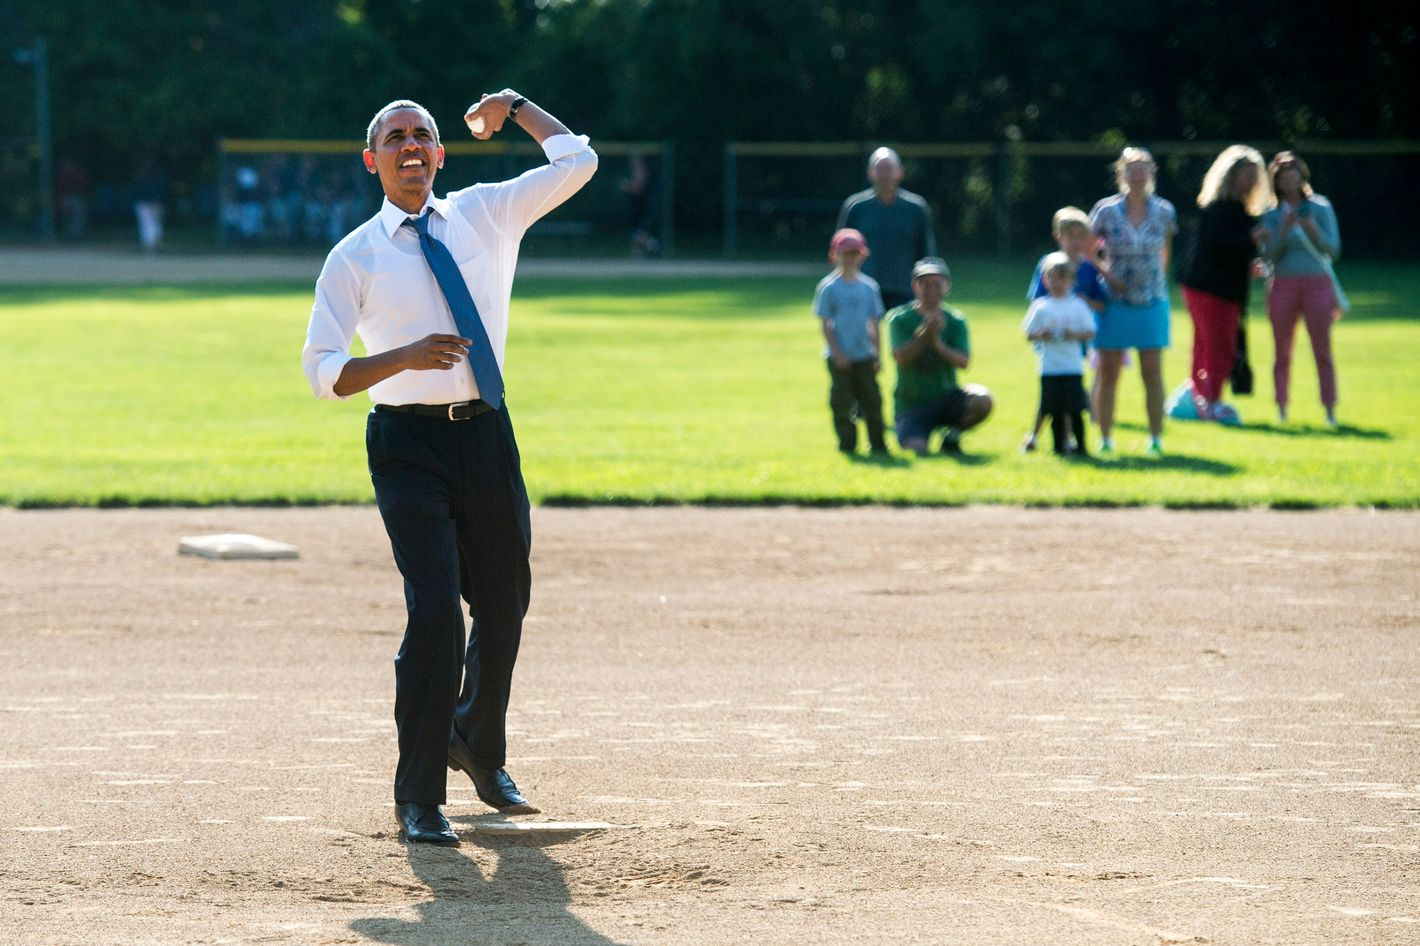 U.S. President Barack Obama throws out the first pitch at a little league baseball game at  Friendship Park May 19, 2014 in Washington, DC.